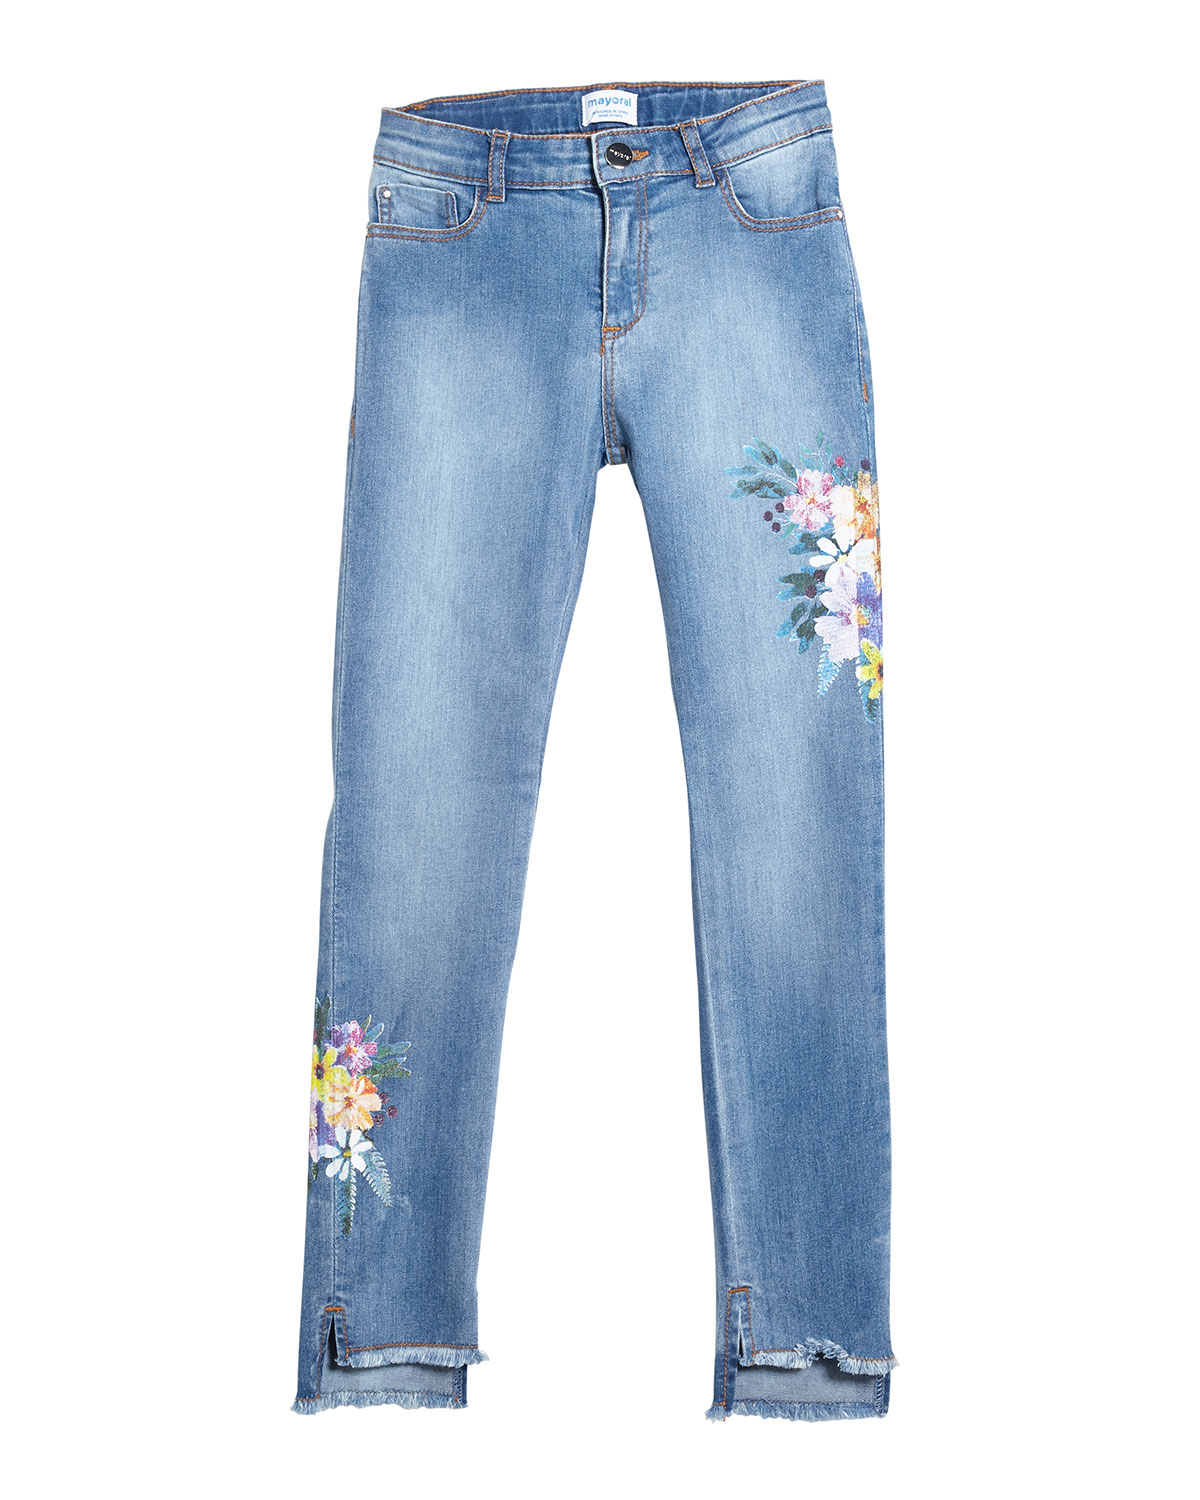 Mayoral FLORAL EMBROIDERED RAW-EDGE DENIM JEANS